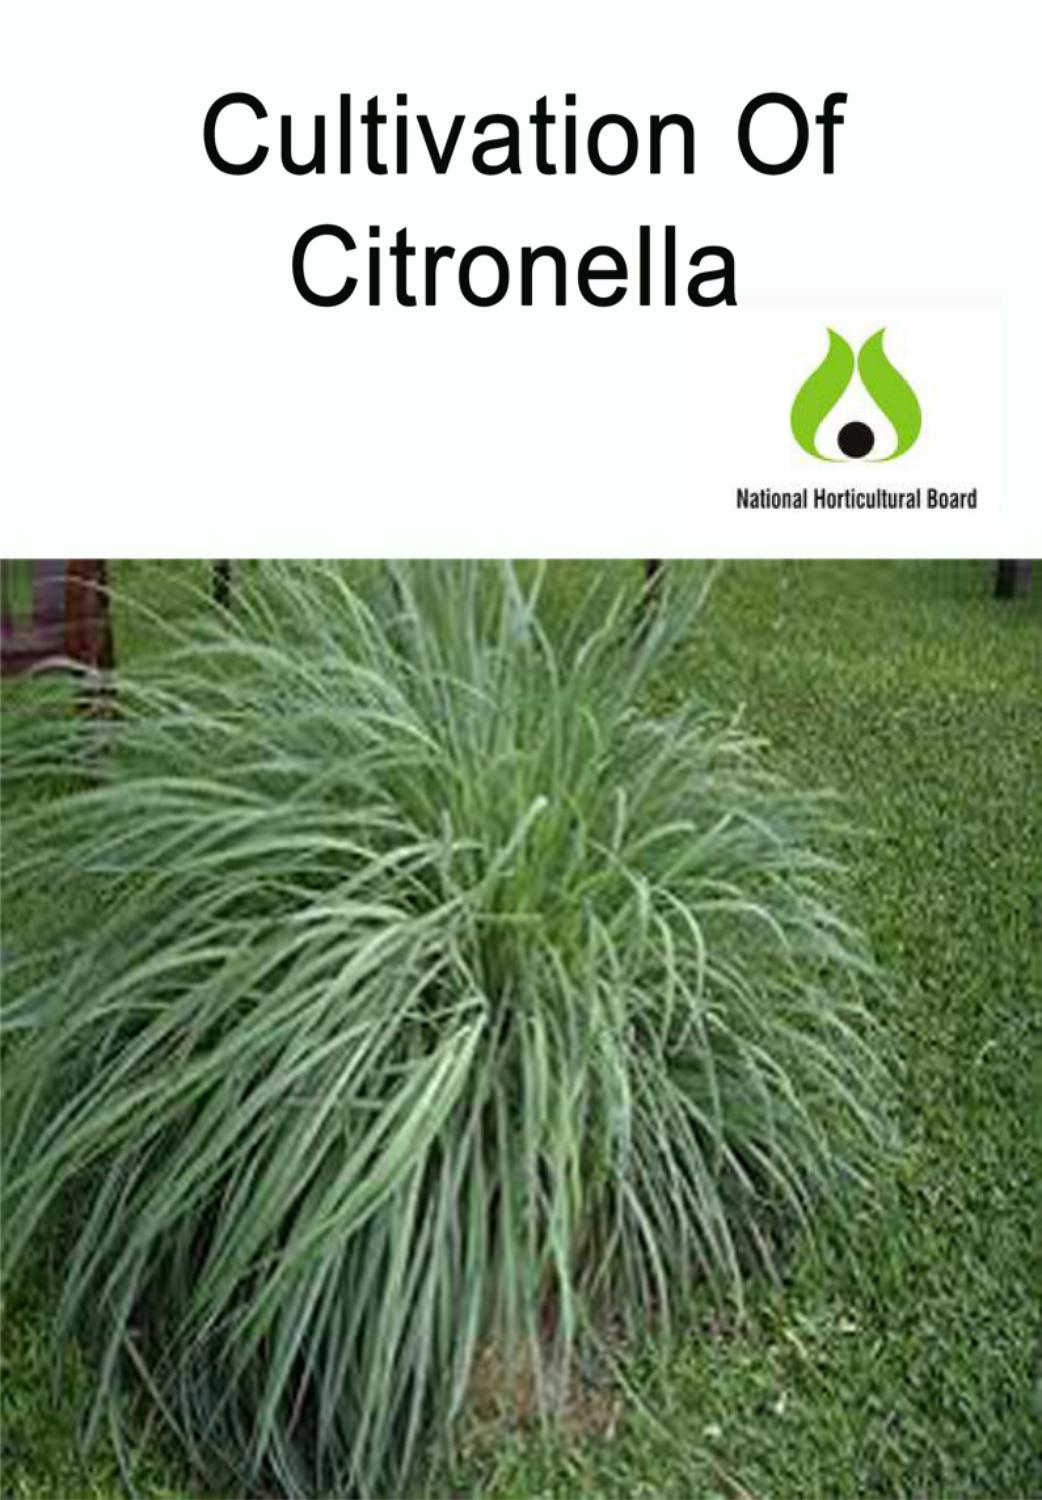 Cultivation Of Citronella Nhb By Kisan Forum Pvt Ltd Issuu